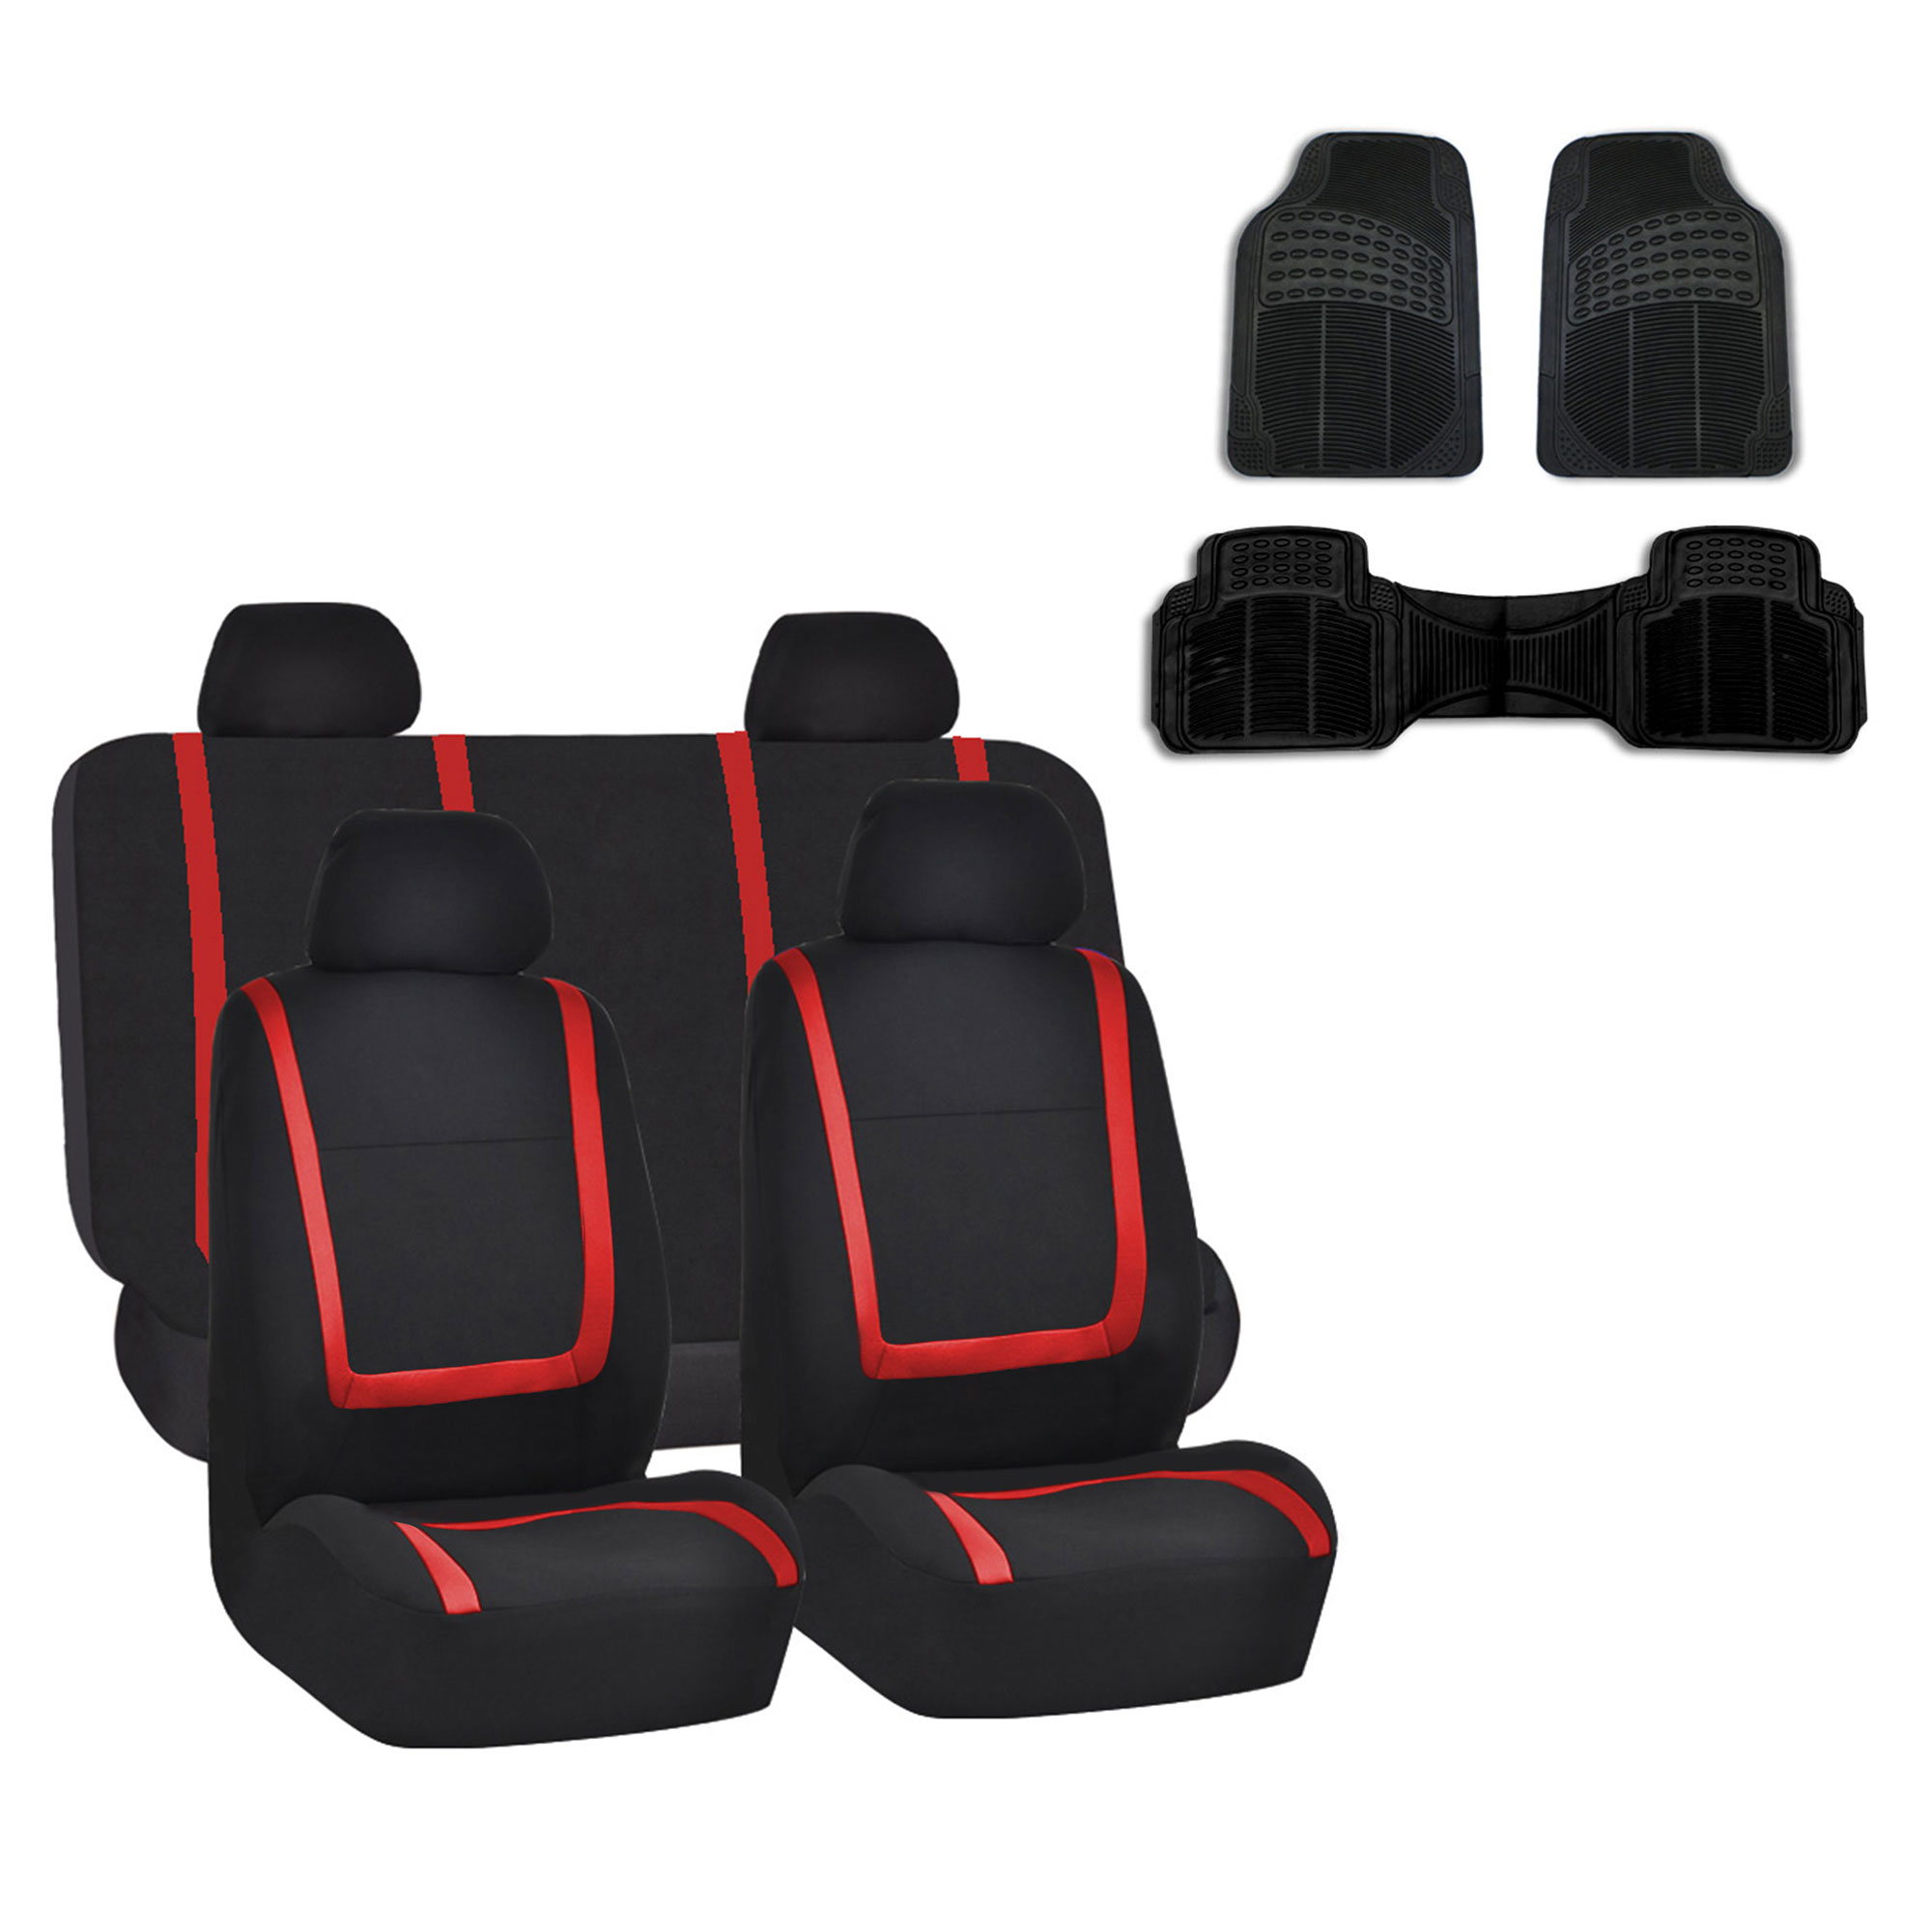 Car Seat Cover Red Black Set For Auto W Rubber Floor Mat